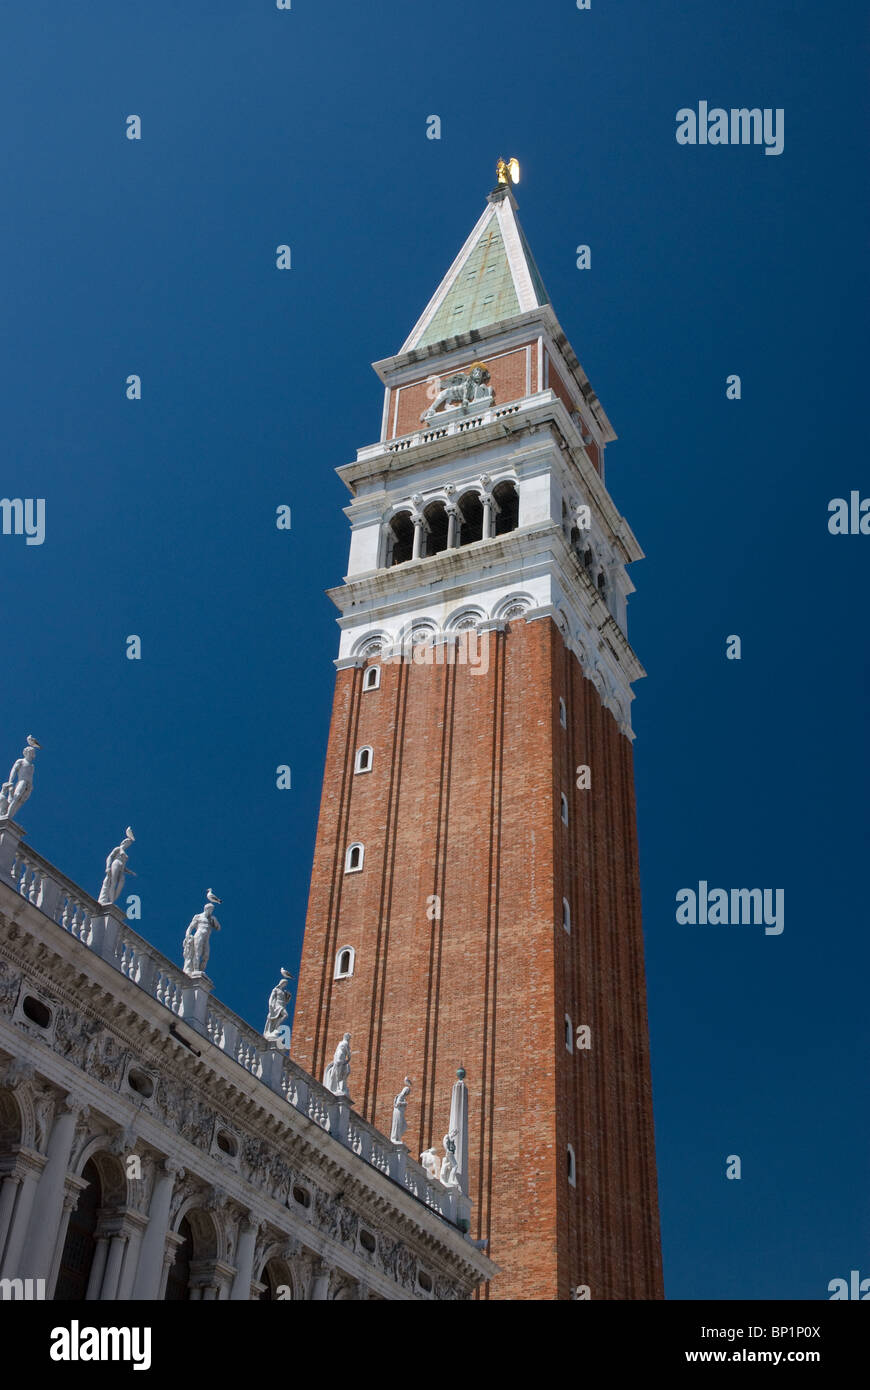 Campanile di San Marco or Bell Tower, St Marks Square, Venice Italy - Stock Image